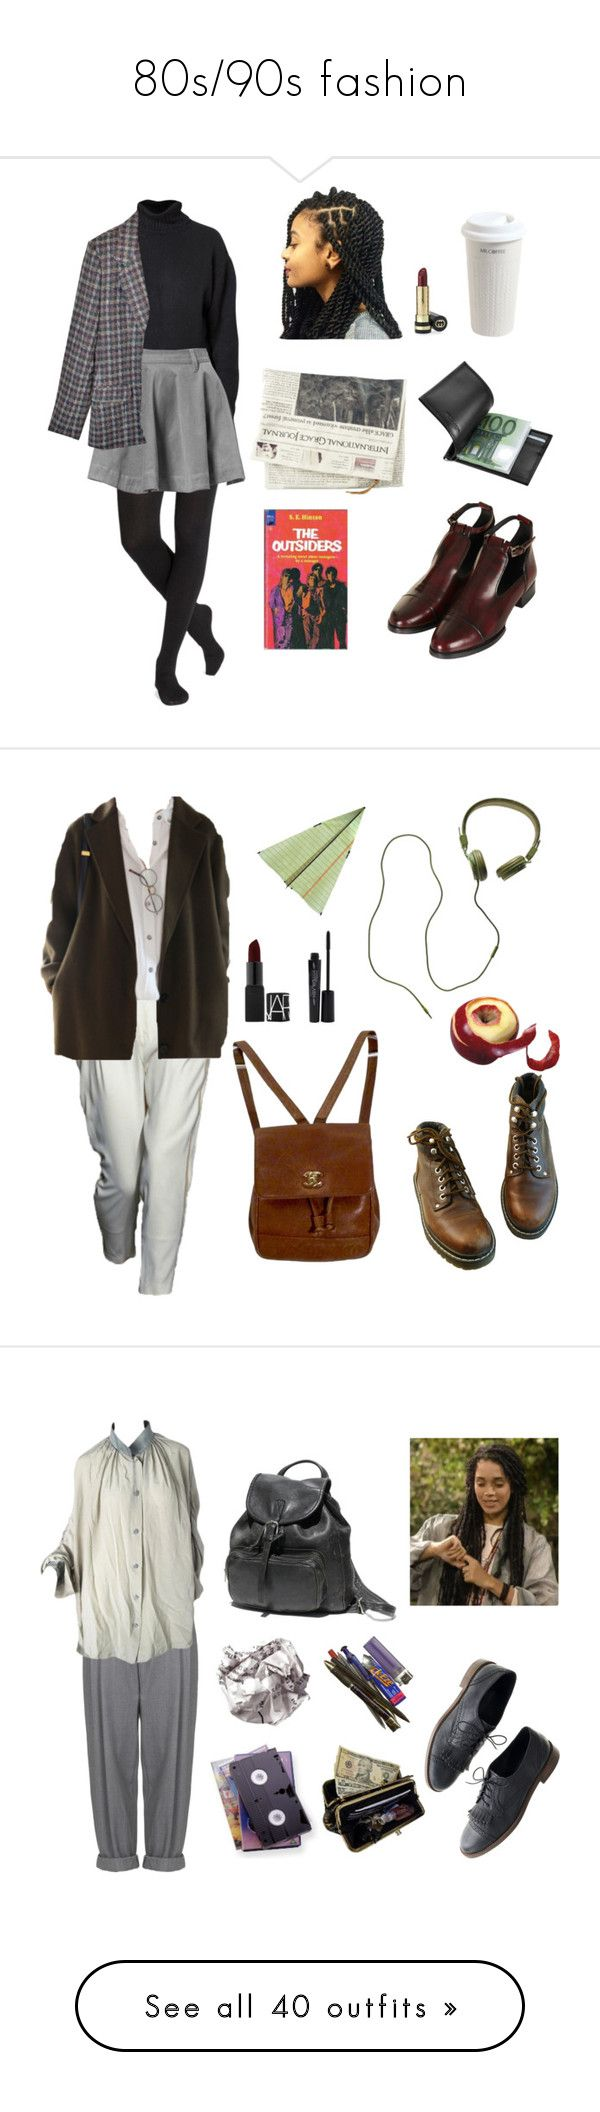 """""""80s/90s fashion"""" by twyzter ❤ liked on Polyvore featuring Joseph, Mr. Coffee, Topshop, Giorgio Fedon 1919, Gucci, Doo.Ri, Madewell, Chanel, NARS Cosmetics and Smashbox"""